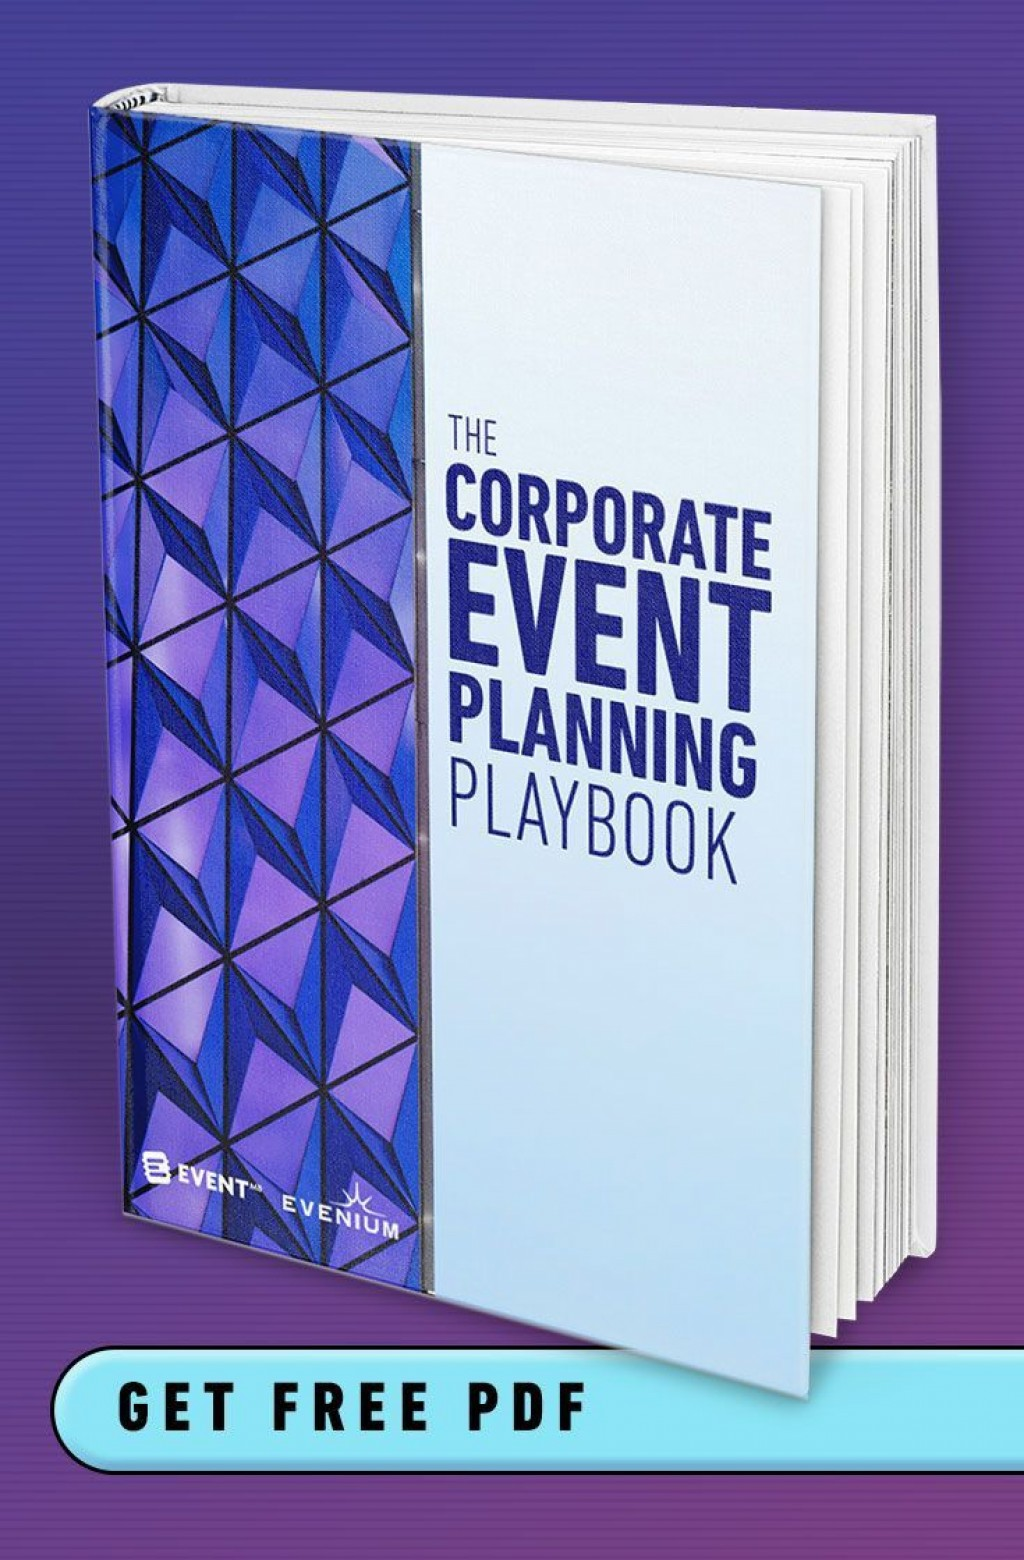 000 Unforgettable Free Event Planning Template Pdf High Def Large